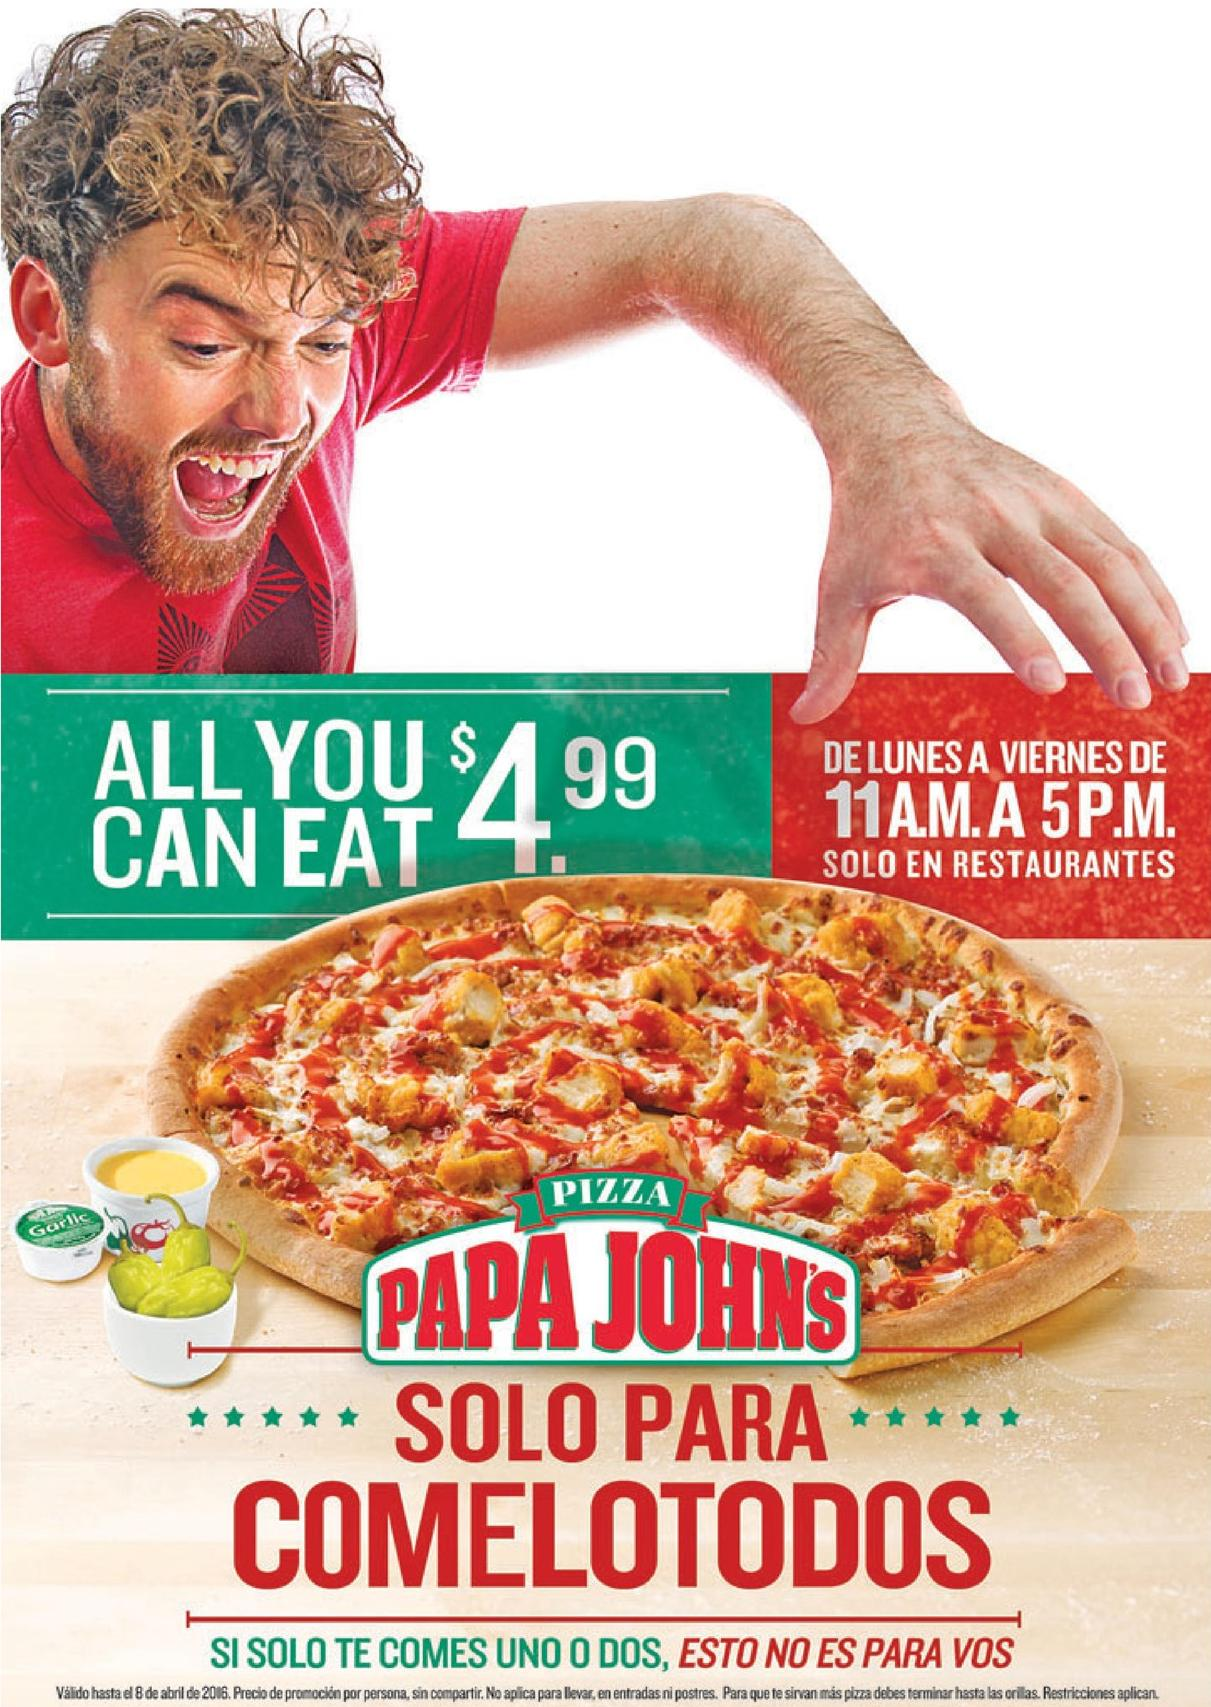 pizza papa johns promocion all you can eat por solo 4